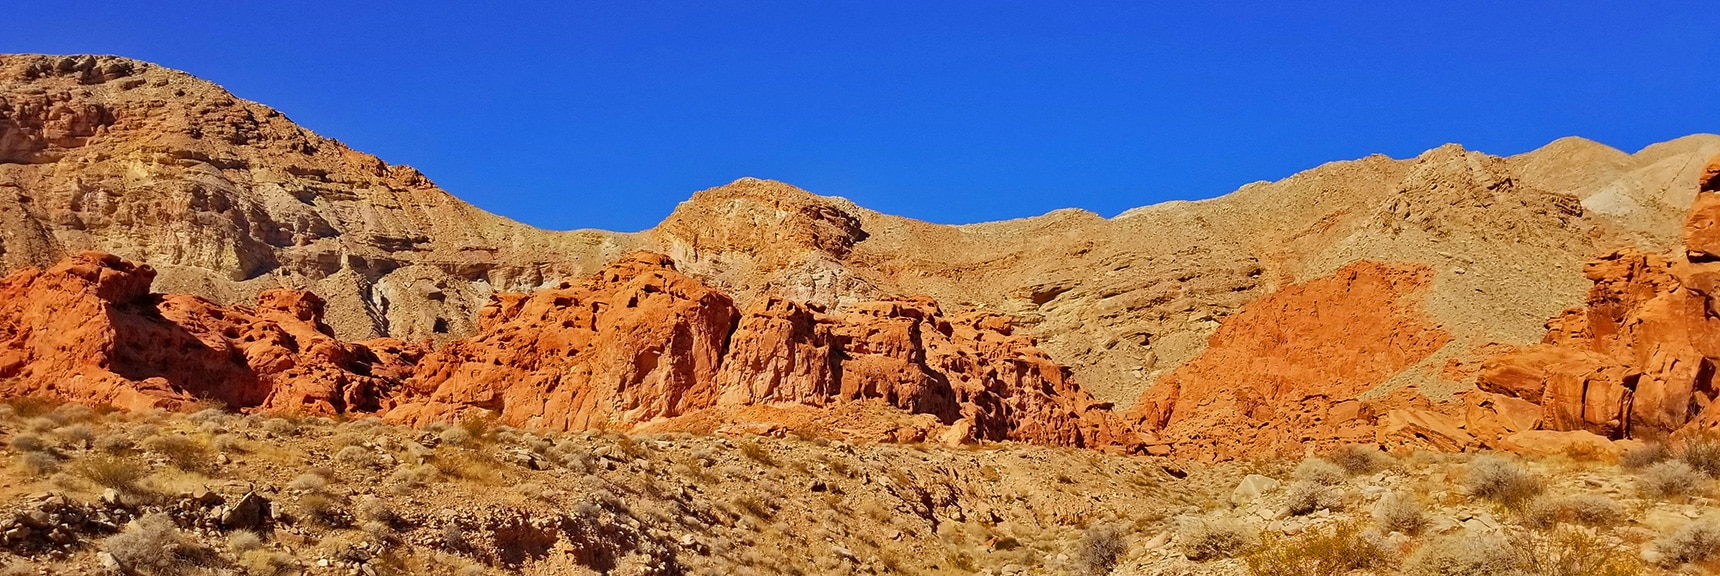 The Iron Leached Up Through the Sand Turning It Reddish | Bowl of Fire, Lake Mead National Recreation Area, Nevada